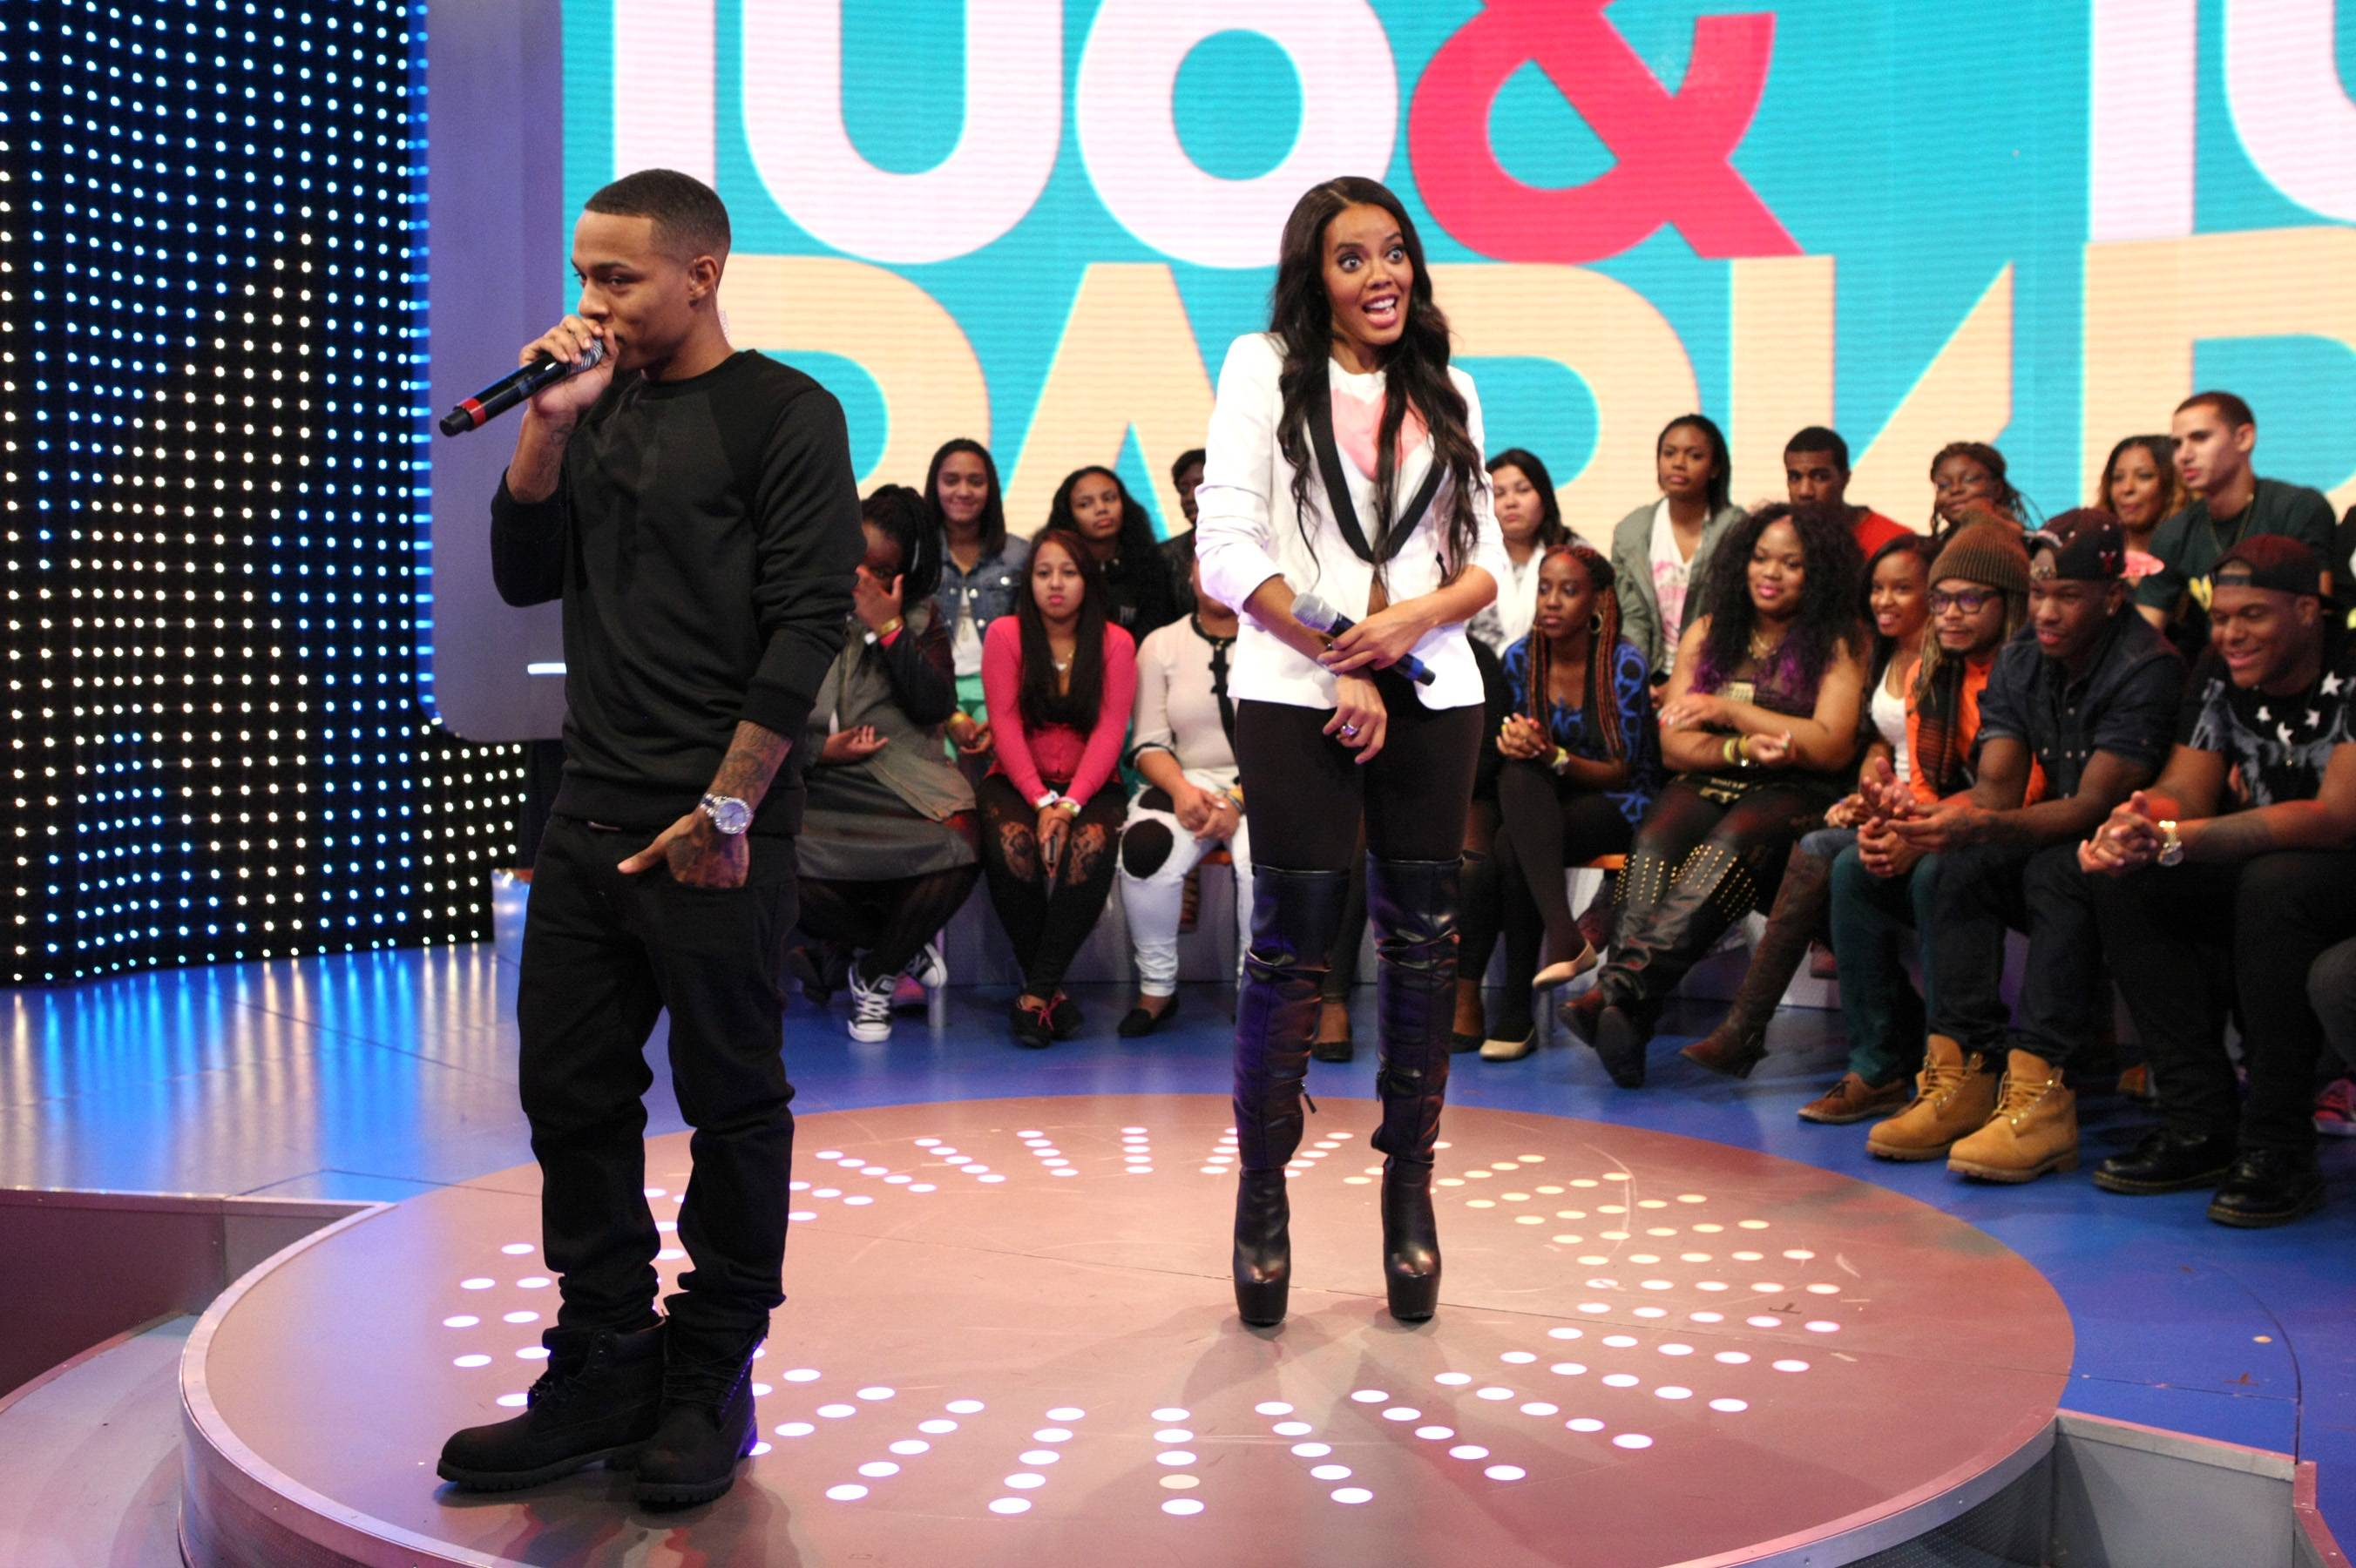 Crazy People - Hosts Bow Wow and Angela Simmons acting a fool with the livest audience members. (Photo: Bennett Raglin/BET/Getty Images for BET)